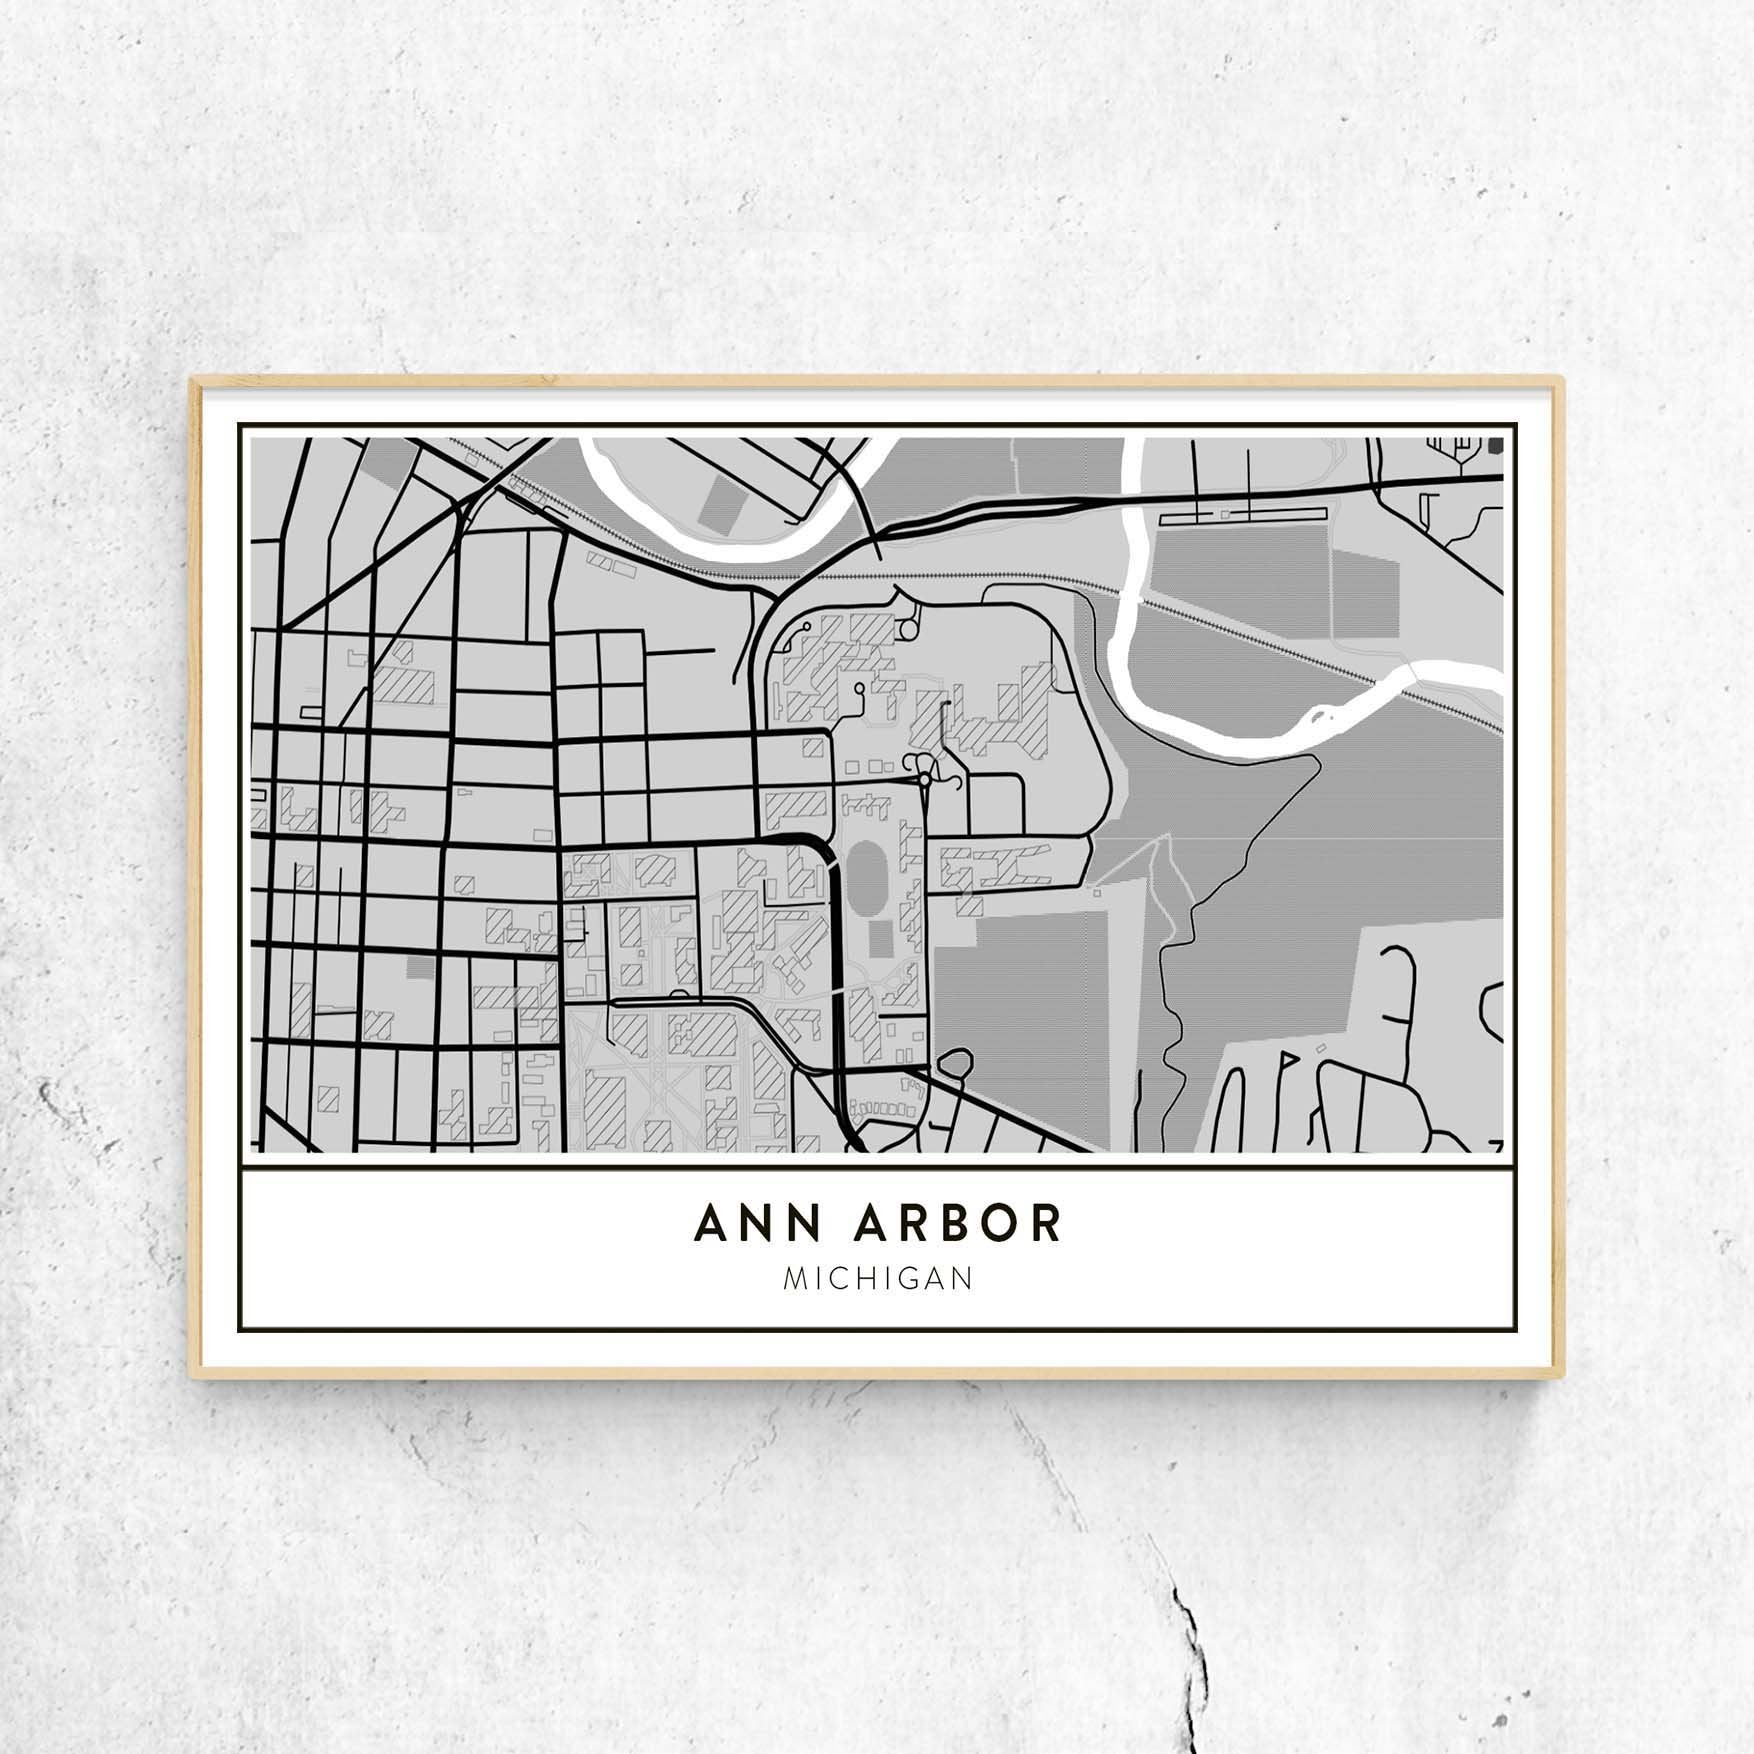 U Michigan Campus Map.Golden Gate Design Co Custom Map Art Prints Of Your Favorite City